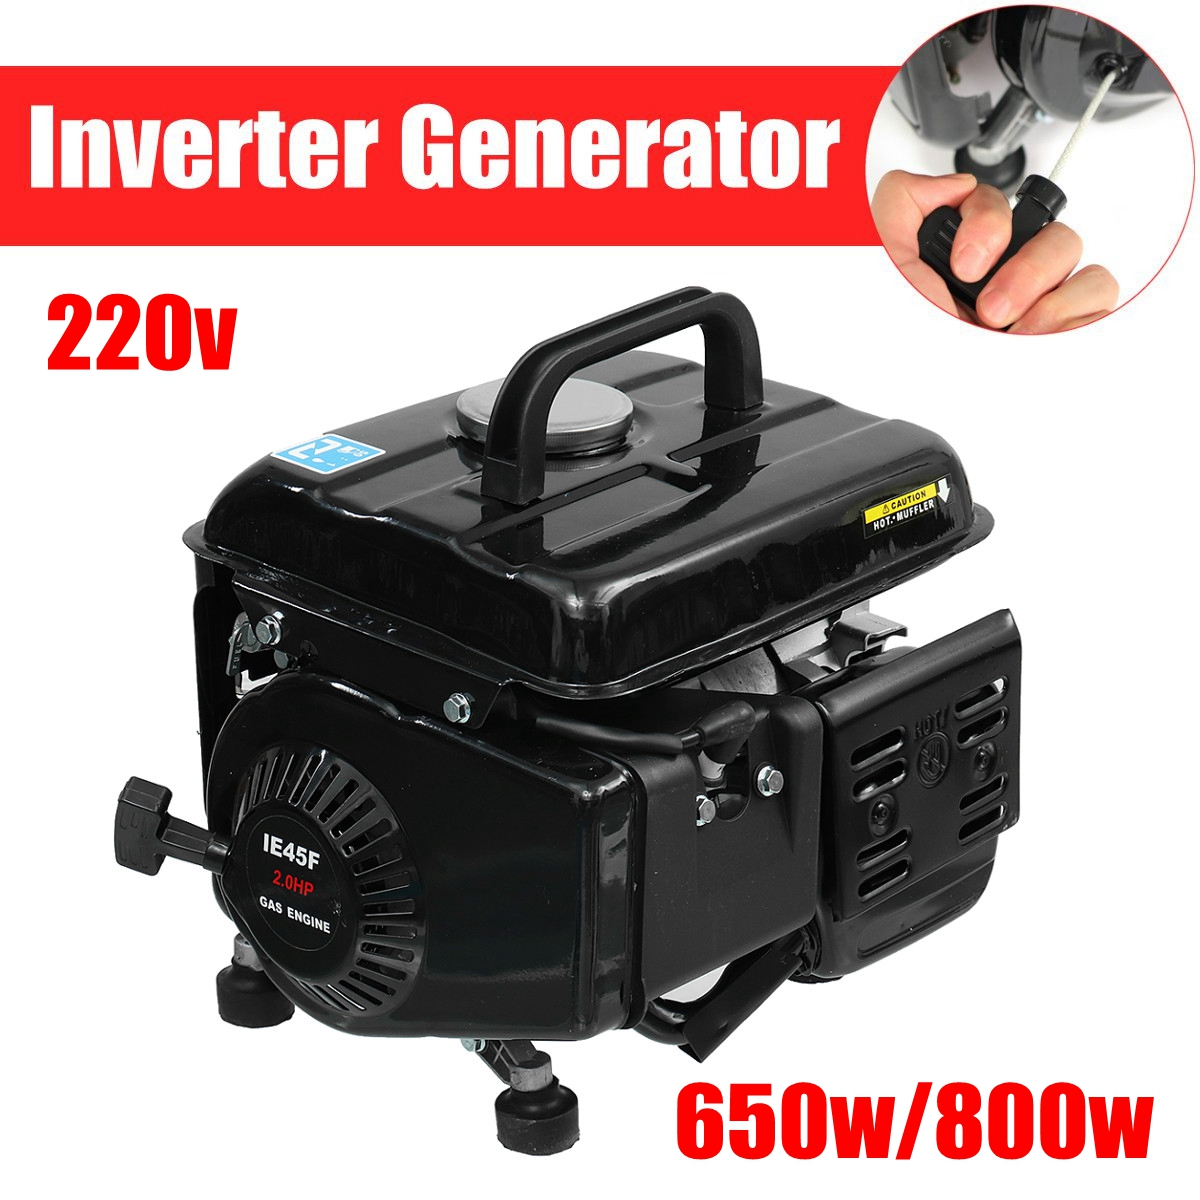 Portable 220V Generator Gas Gasoline Powered Electric Camping RV Quiet Inverter 650W 800W Peak- kalibr beg 1200i generator gasoline powered camping inverter